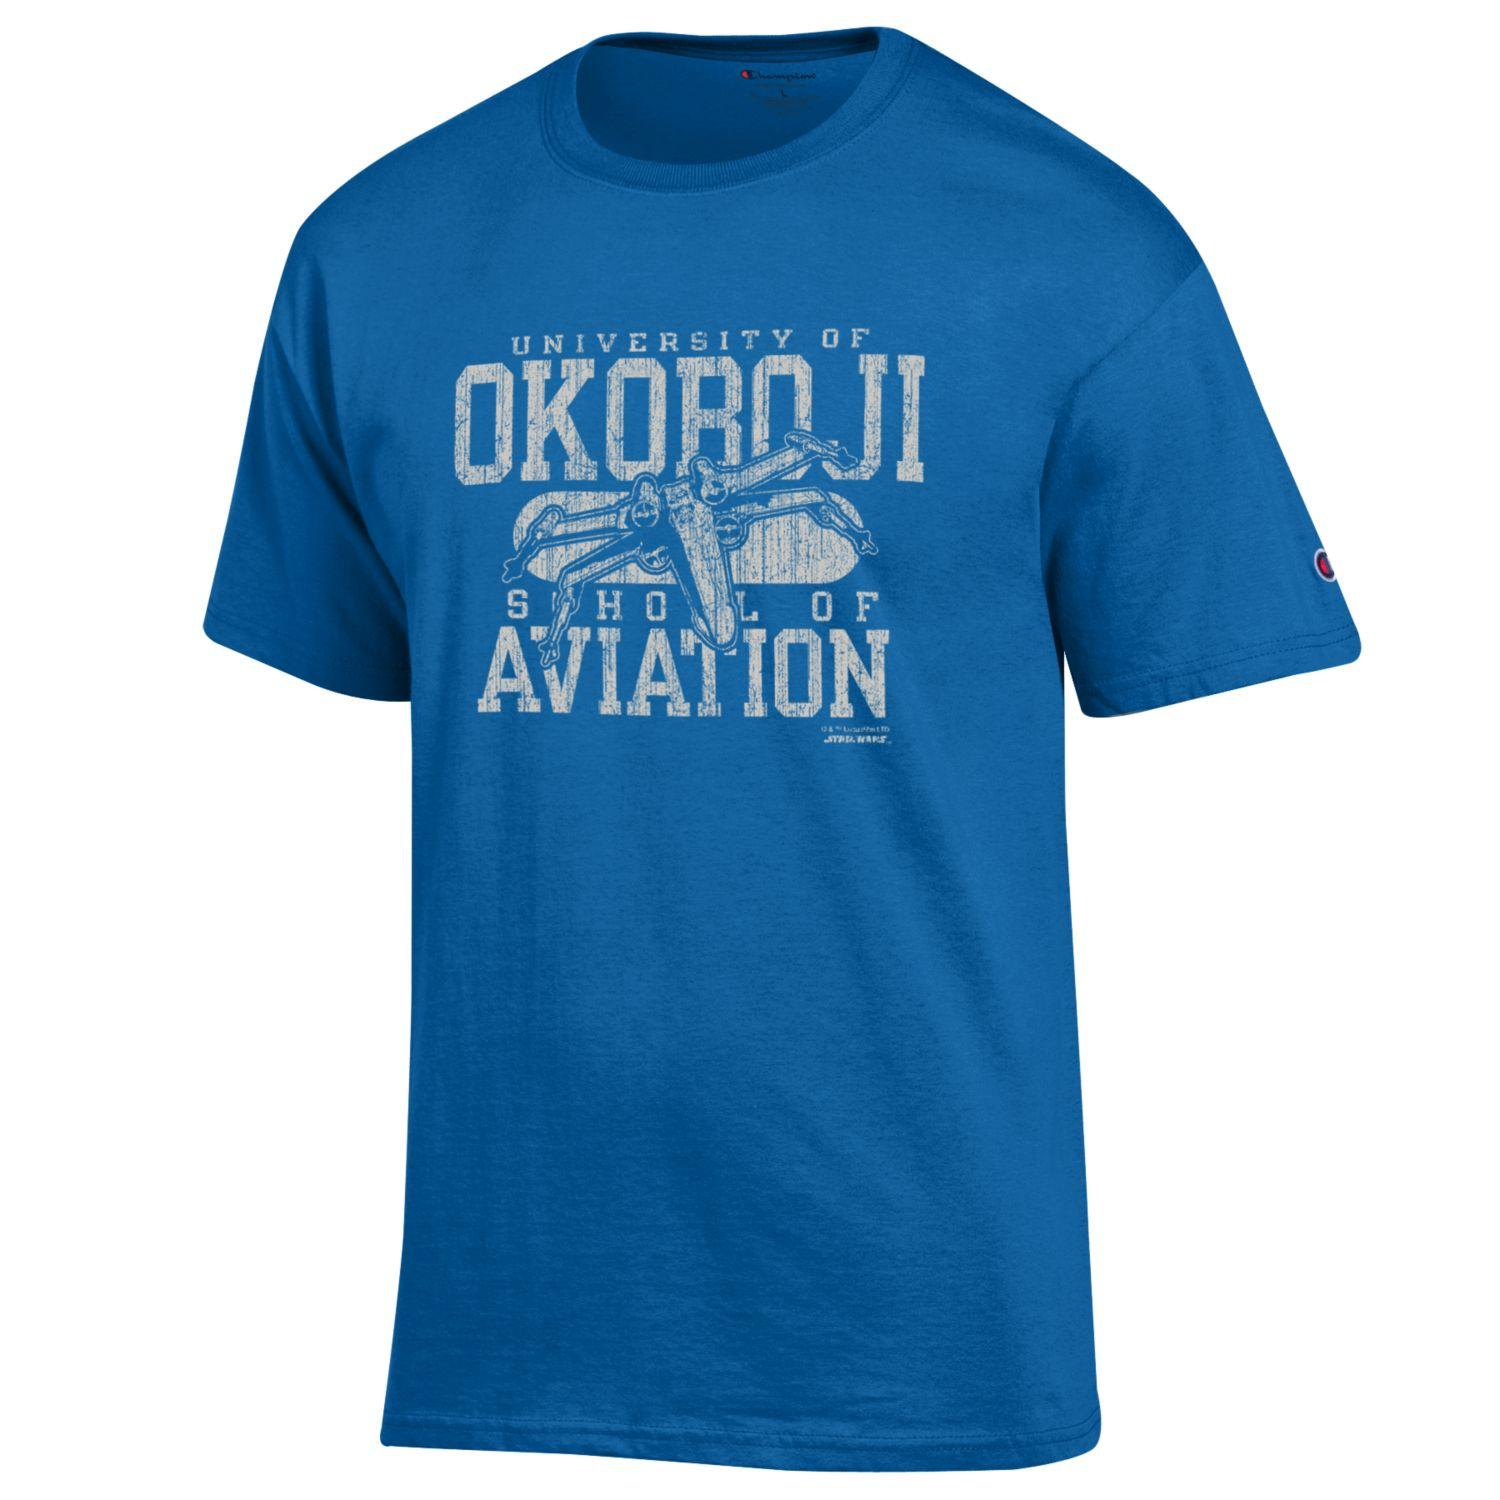 "University of Okoboji Star Wars™ ""School of Aviation"" X-Wing Starfighter Tee"